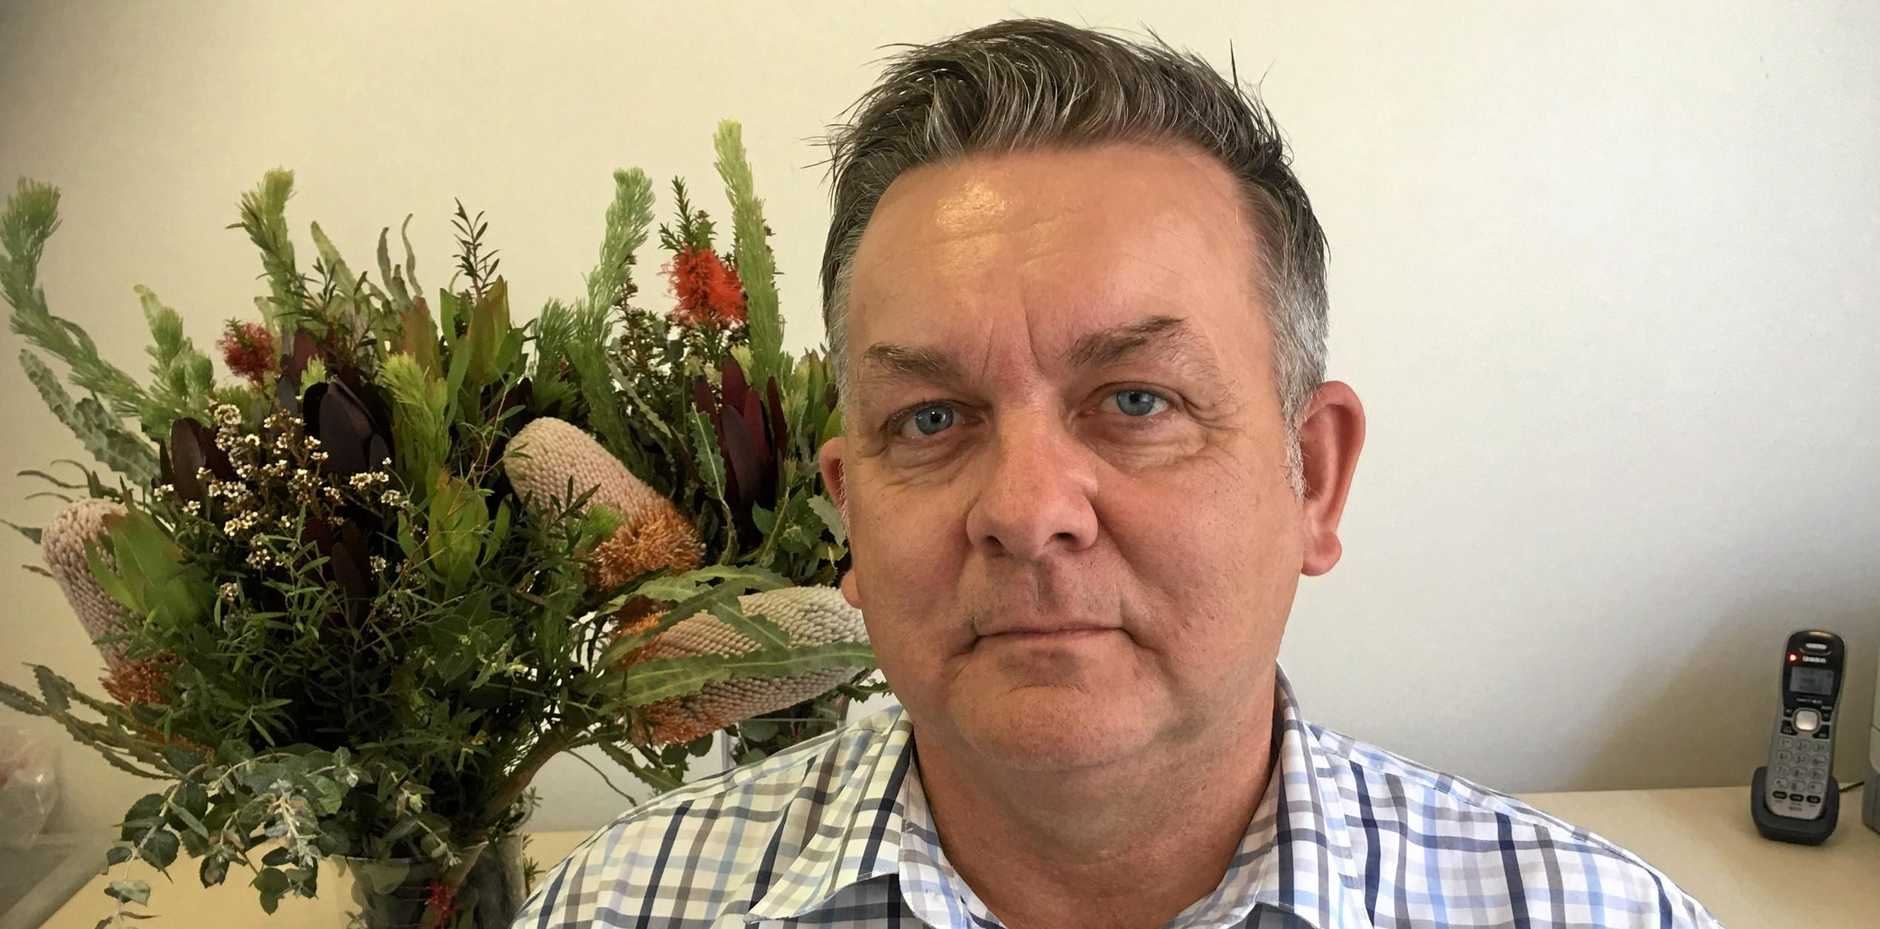 BLOOMING MAD: Flower Association executive officer Shane Holborn is upset no flowers were given at the Commonwealth Games.